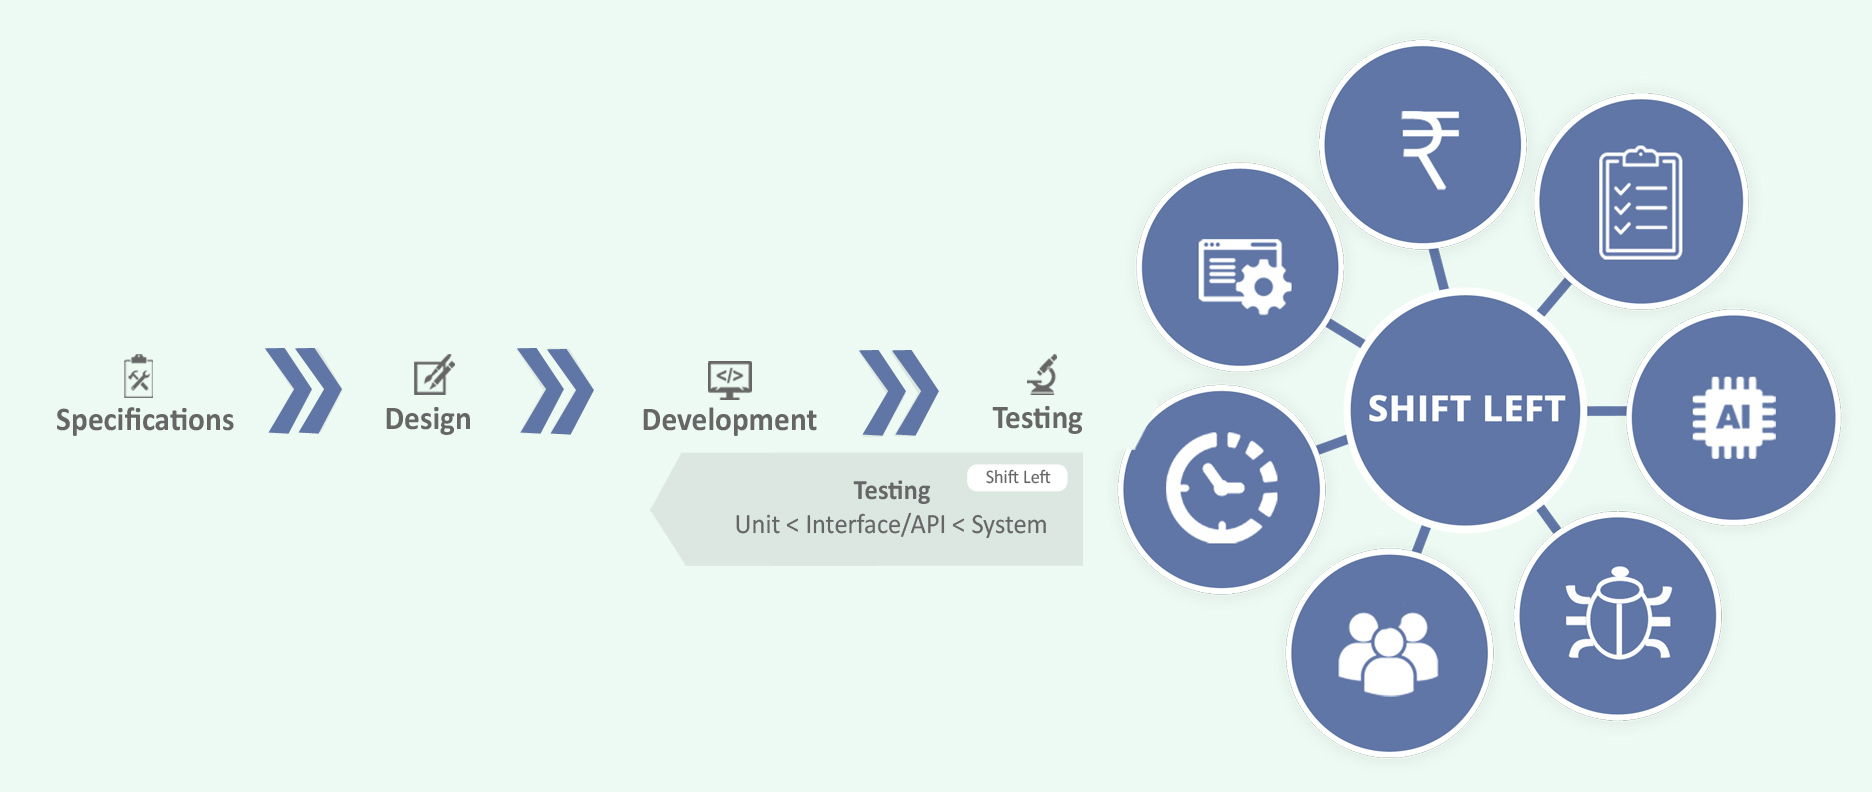 Is your test automation tool ready for Shift Left testing